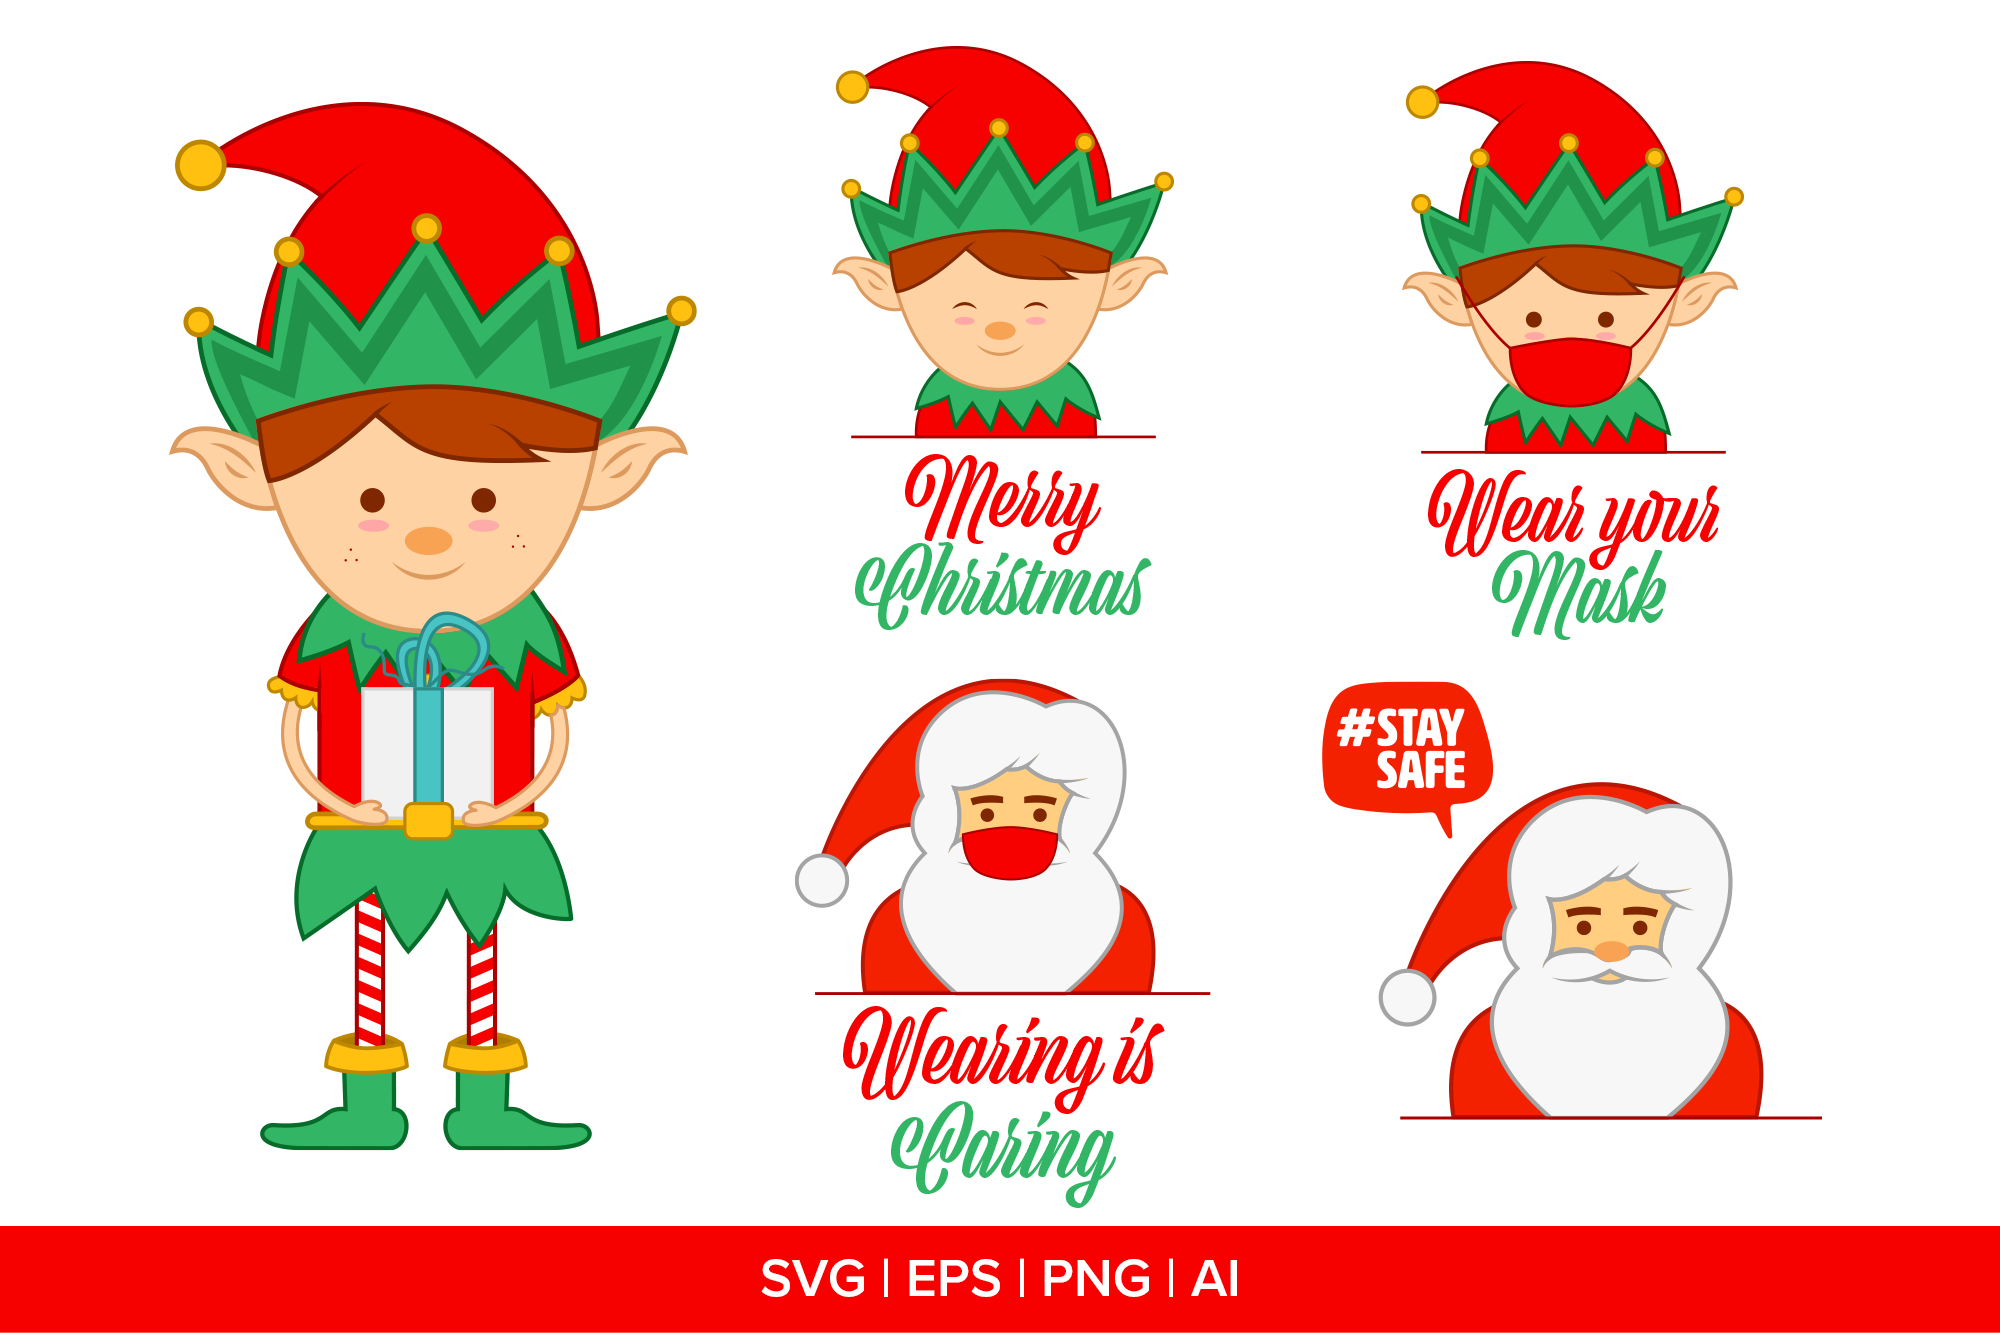 Christmas Gnome Svg Free Svg Cut Files Create Your Diy Projects Using Your Cricut Explore Silhouette And More The Free Cut Files Include Svg Dxf Eps And Png Files